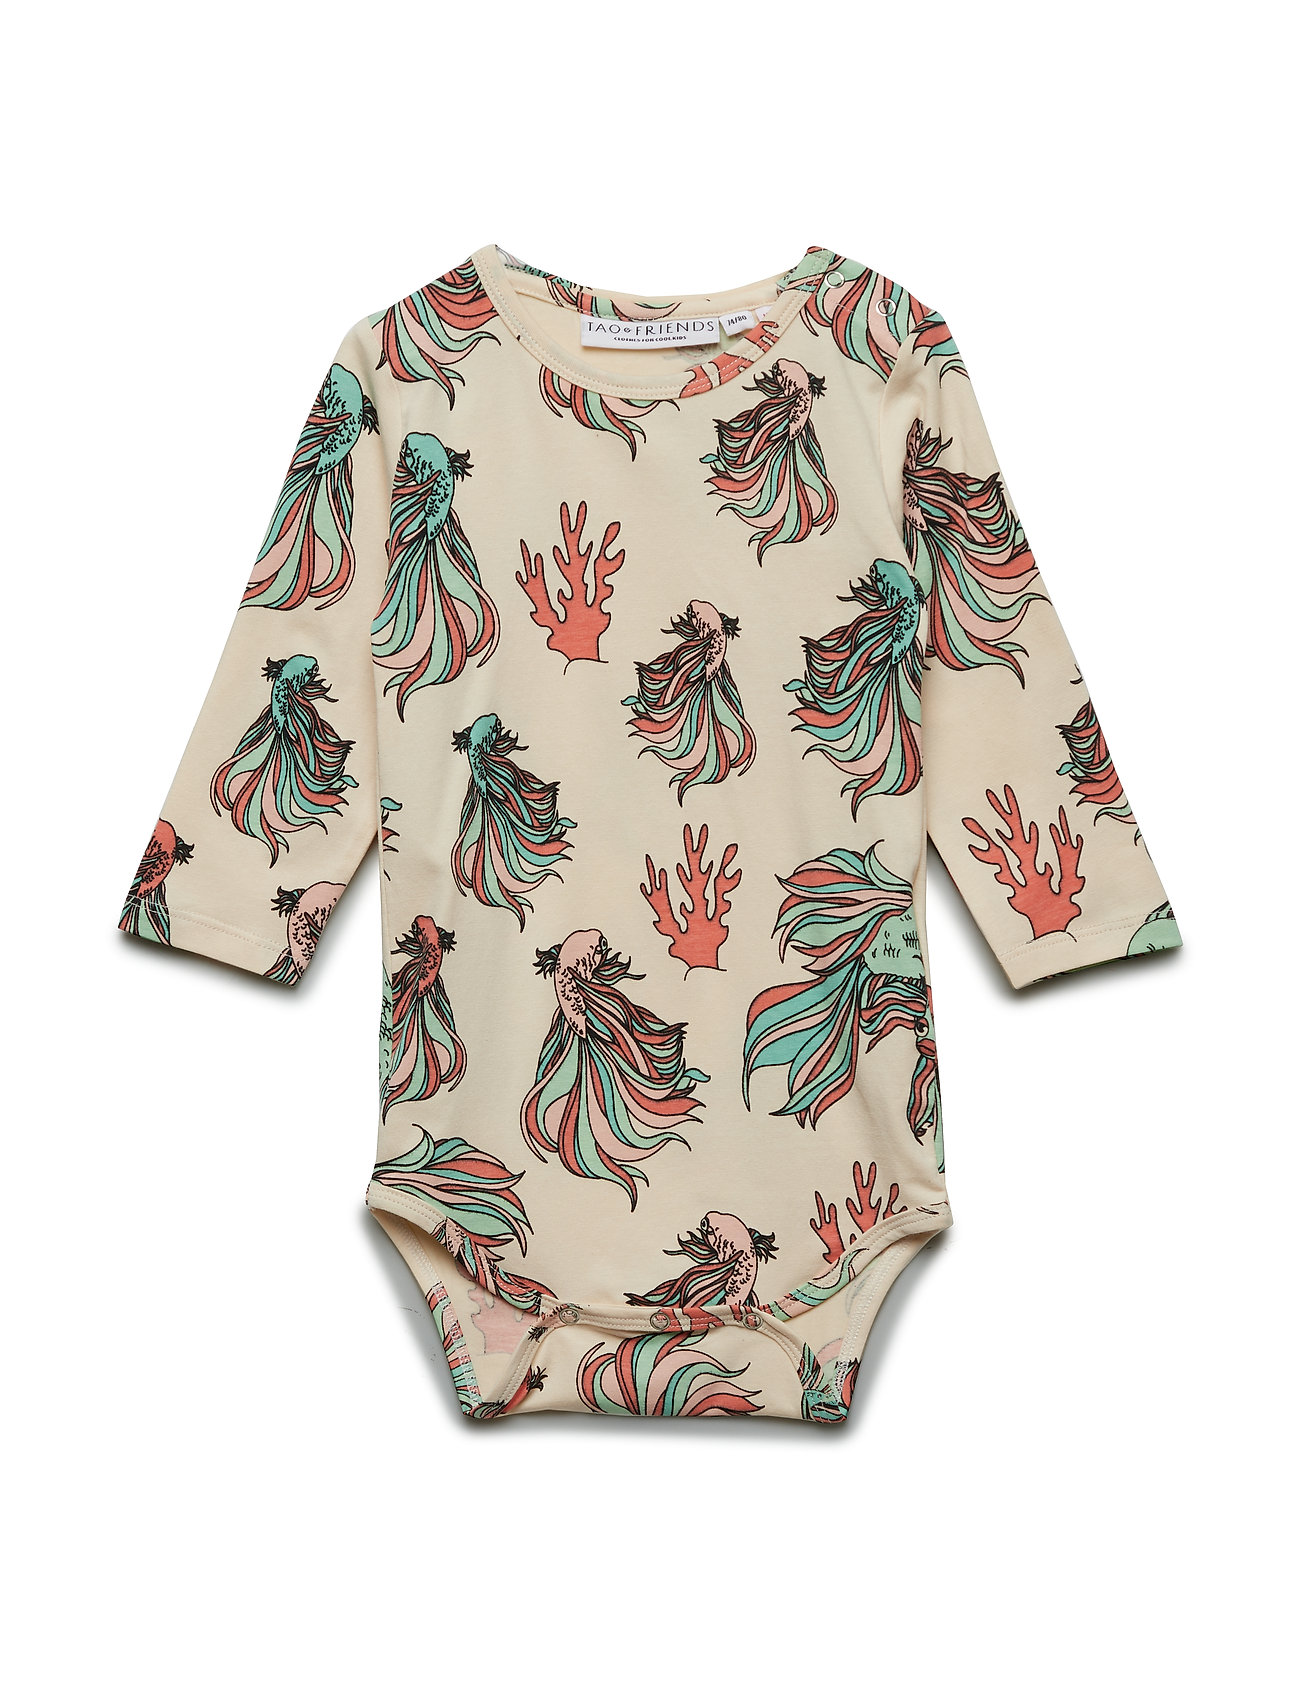 Tao & friends Baby Body multi-animal FISKEN - BEIGE